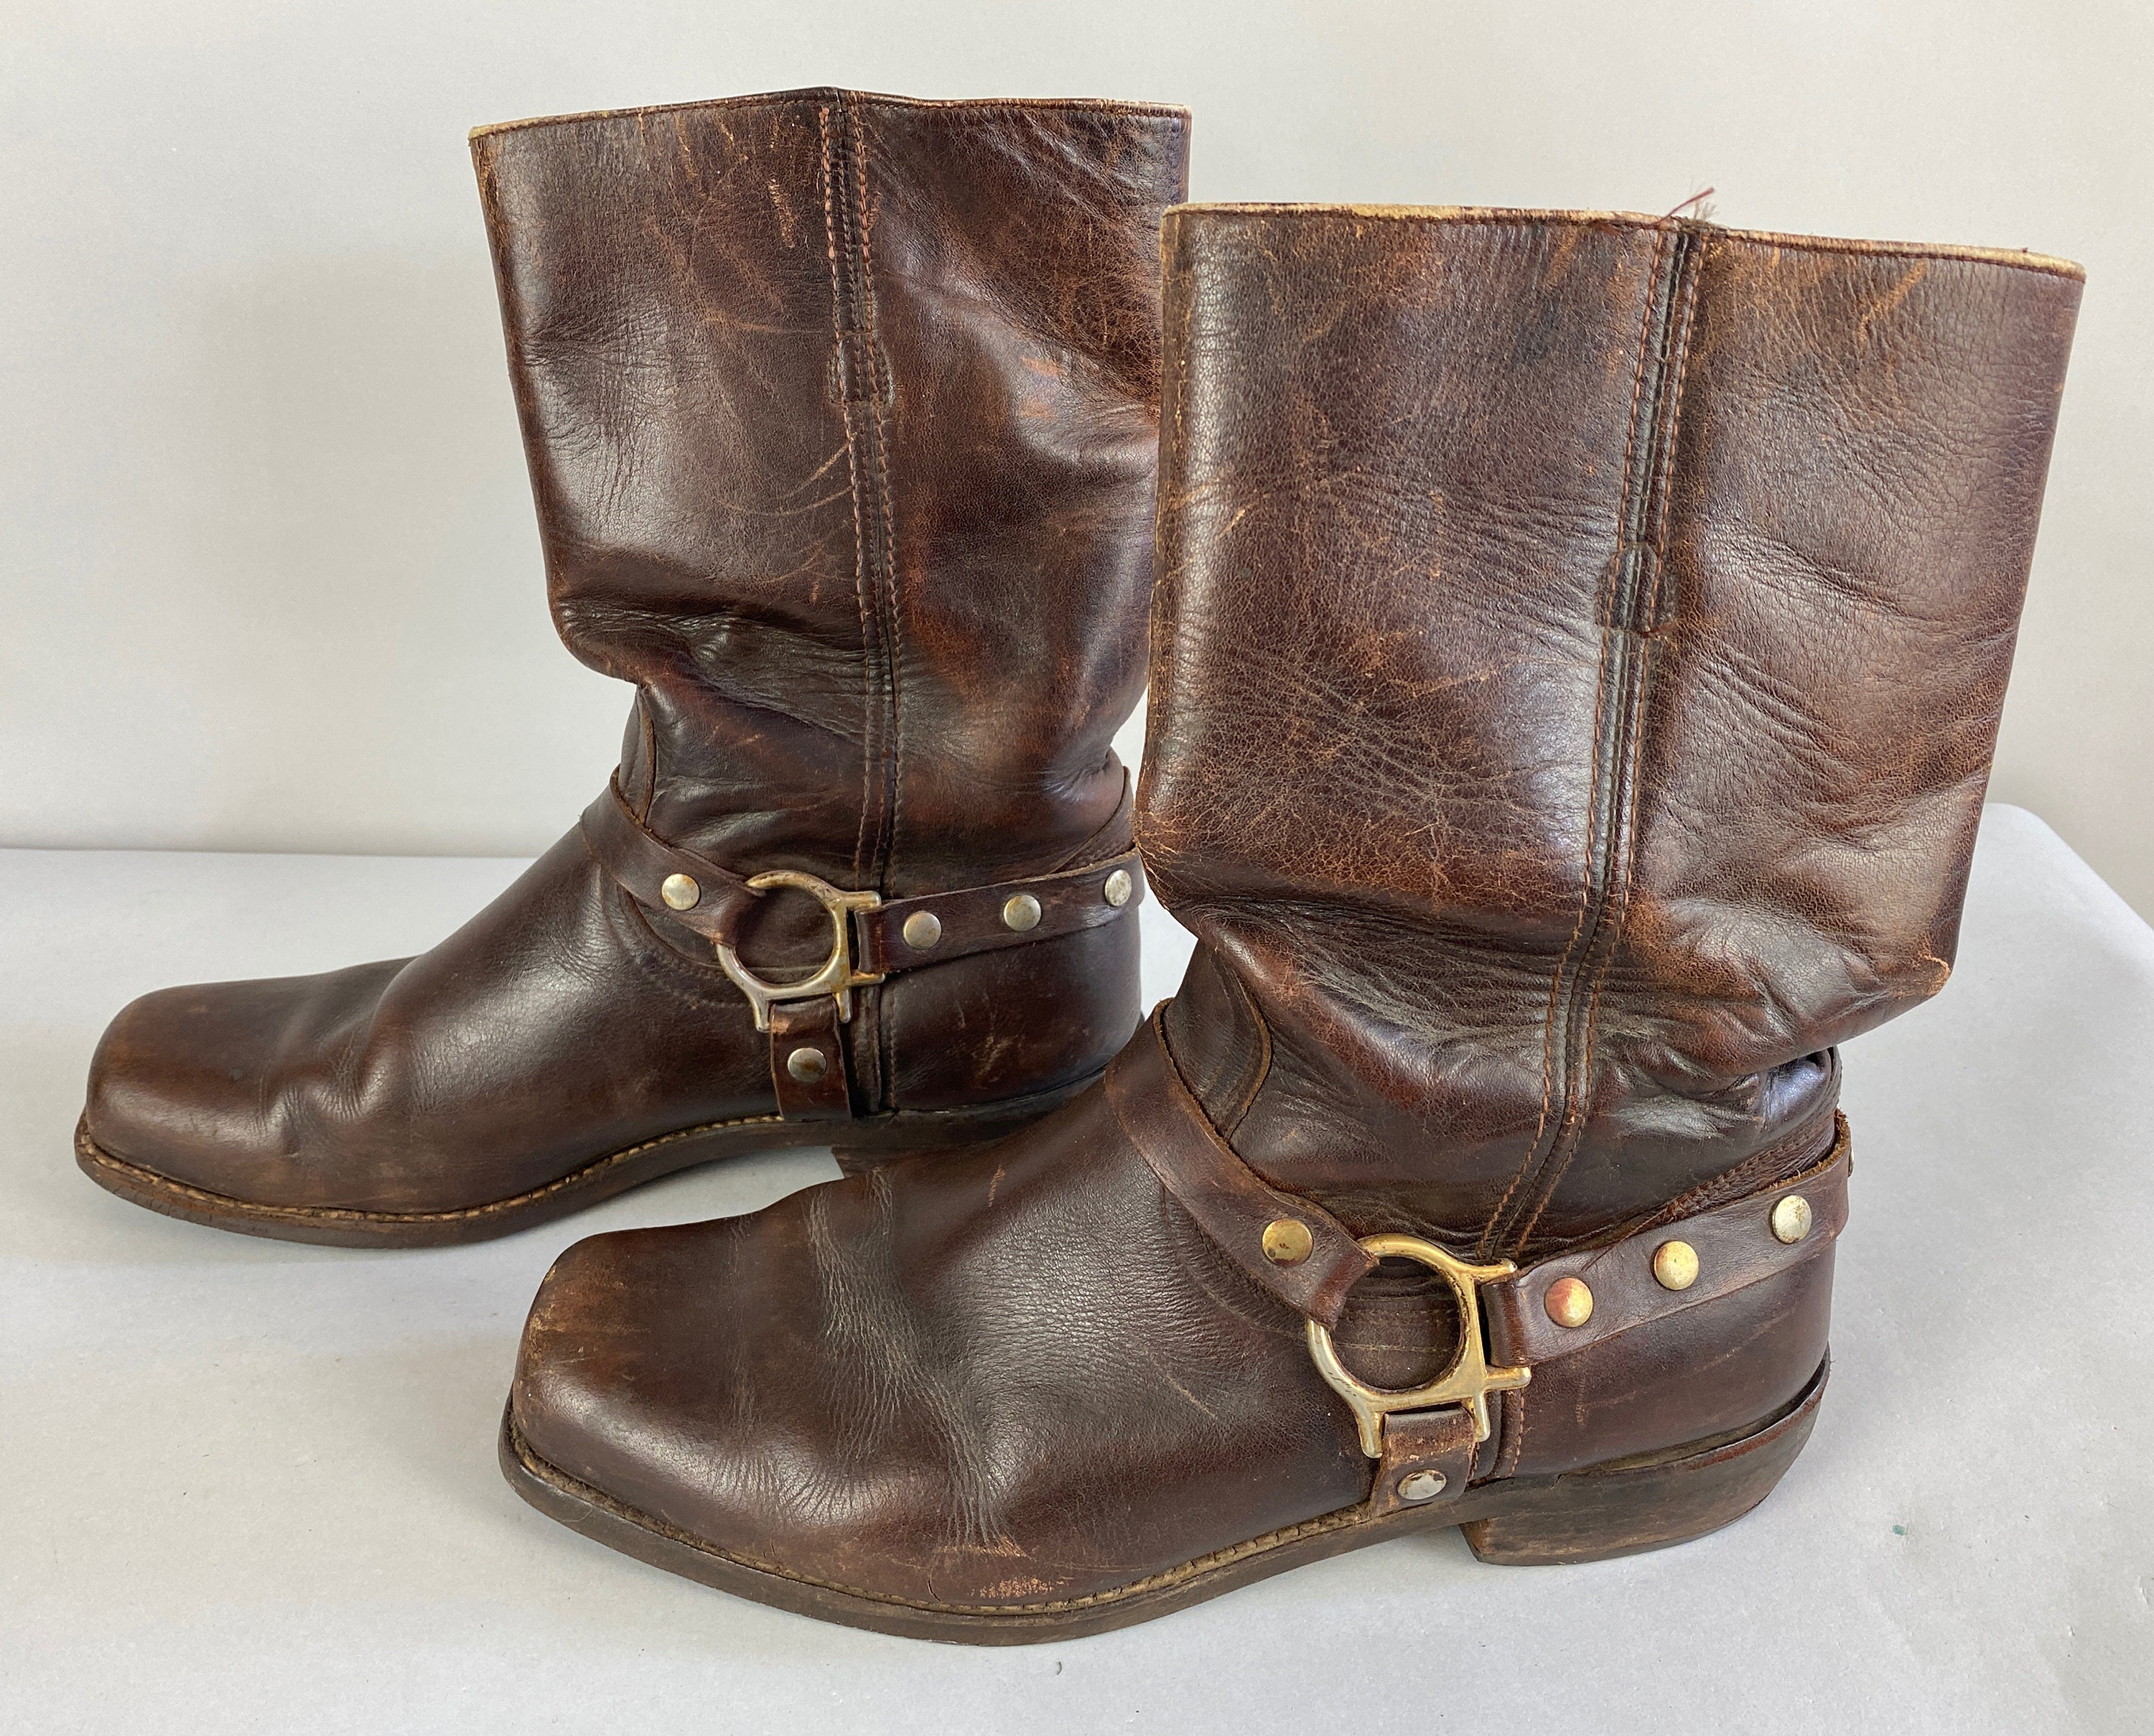 1940s Jewelry Styles and History 1940S The Wild One Boots  Vintage 40S Walnut Brown Leather Motorcycle Engineer Work Shoes with Studded Straps  Ring Size Us 11.5 1112 $22.00 AT vintagedancer.com